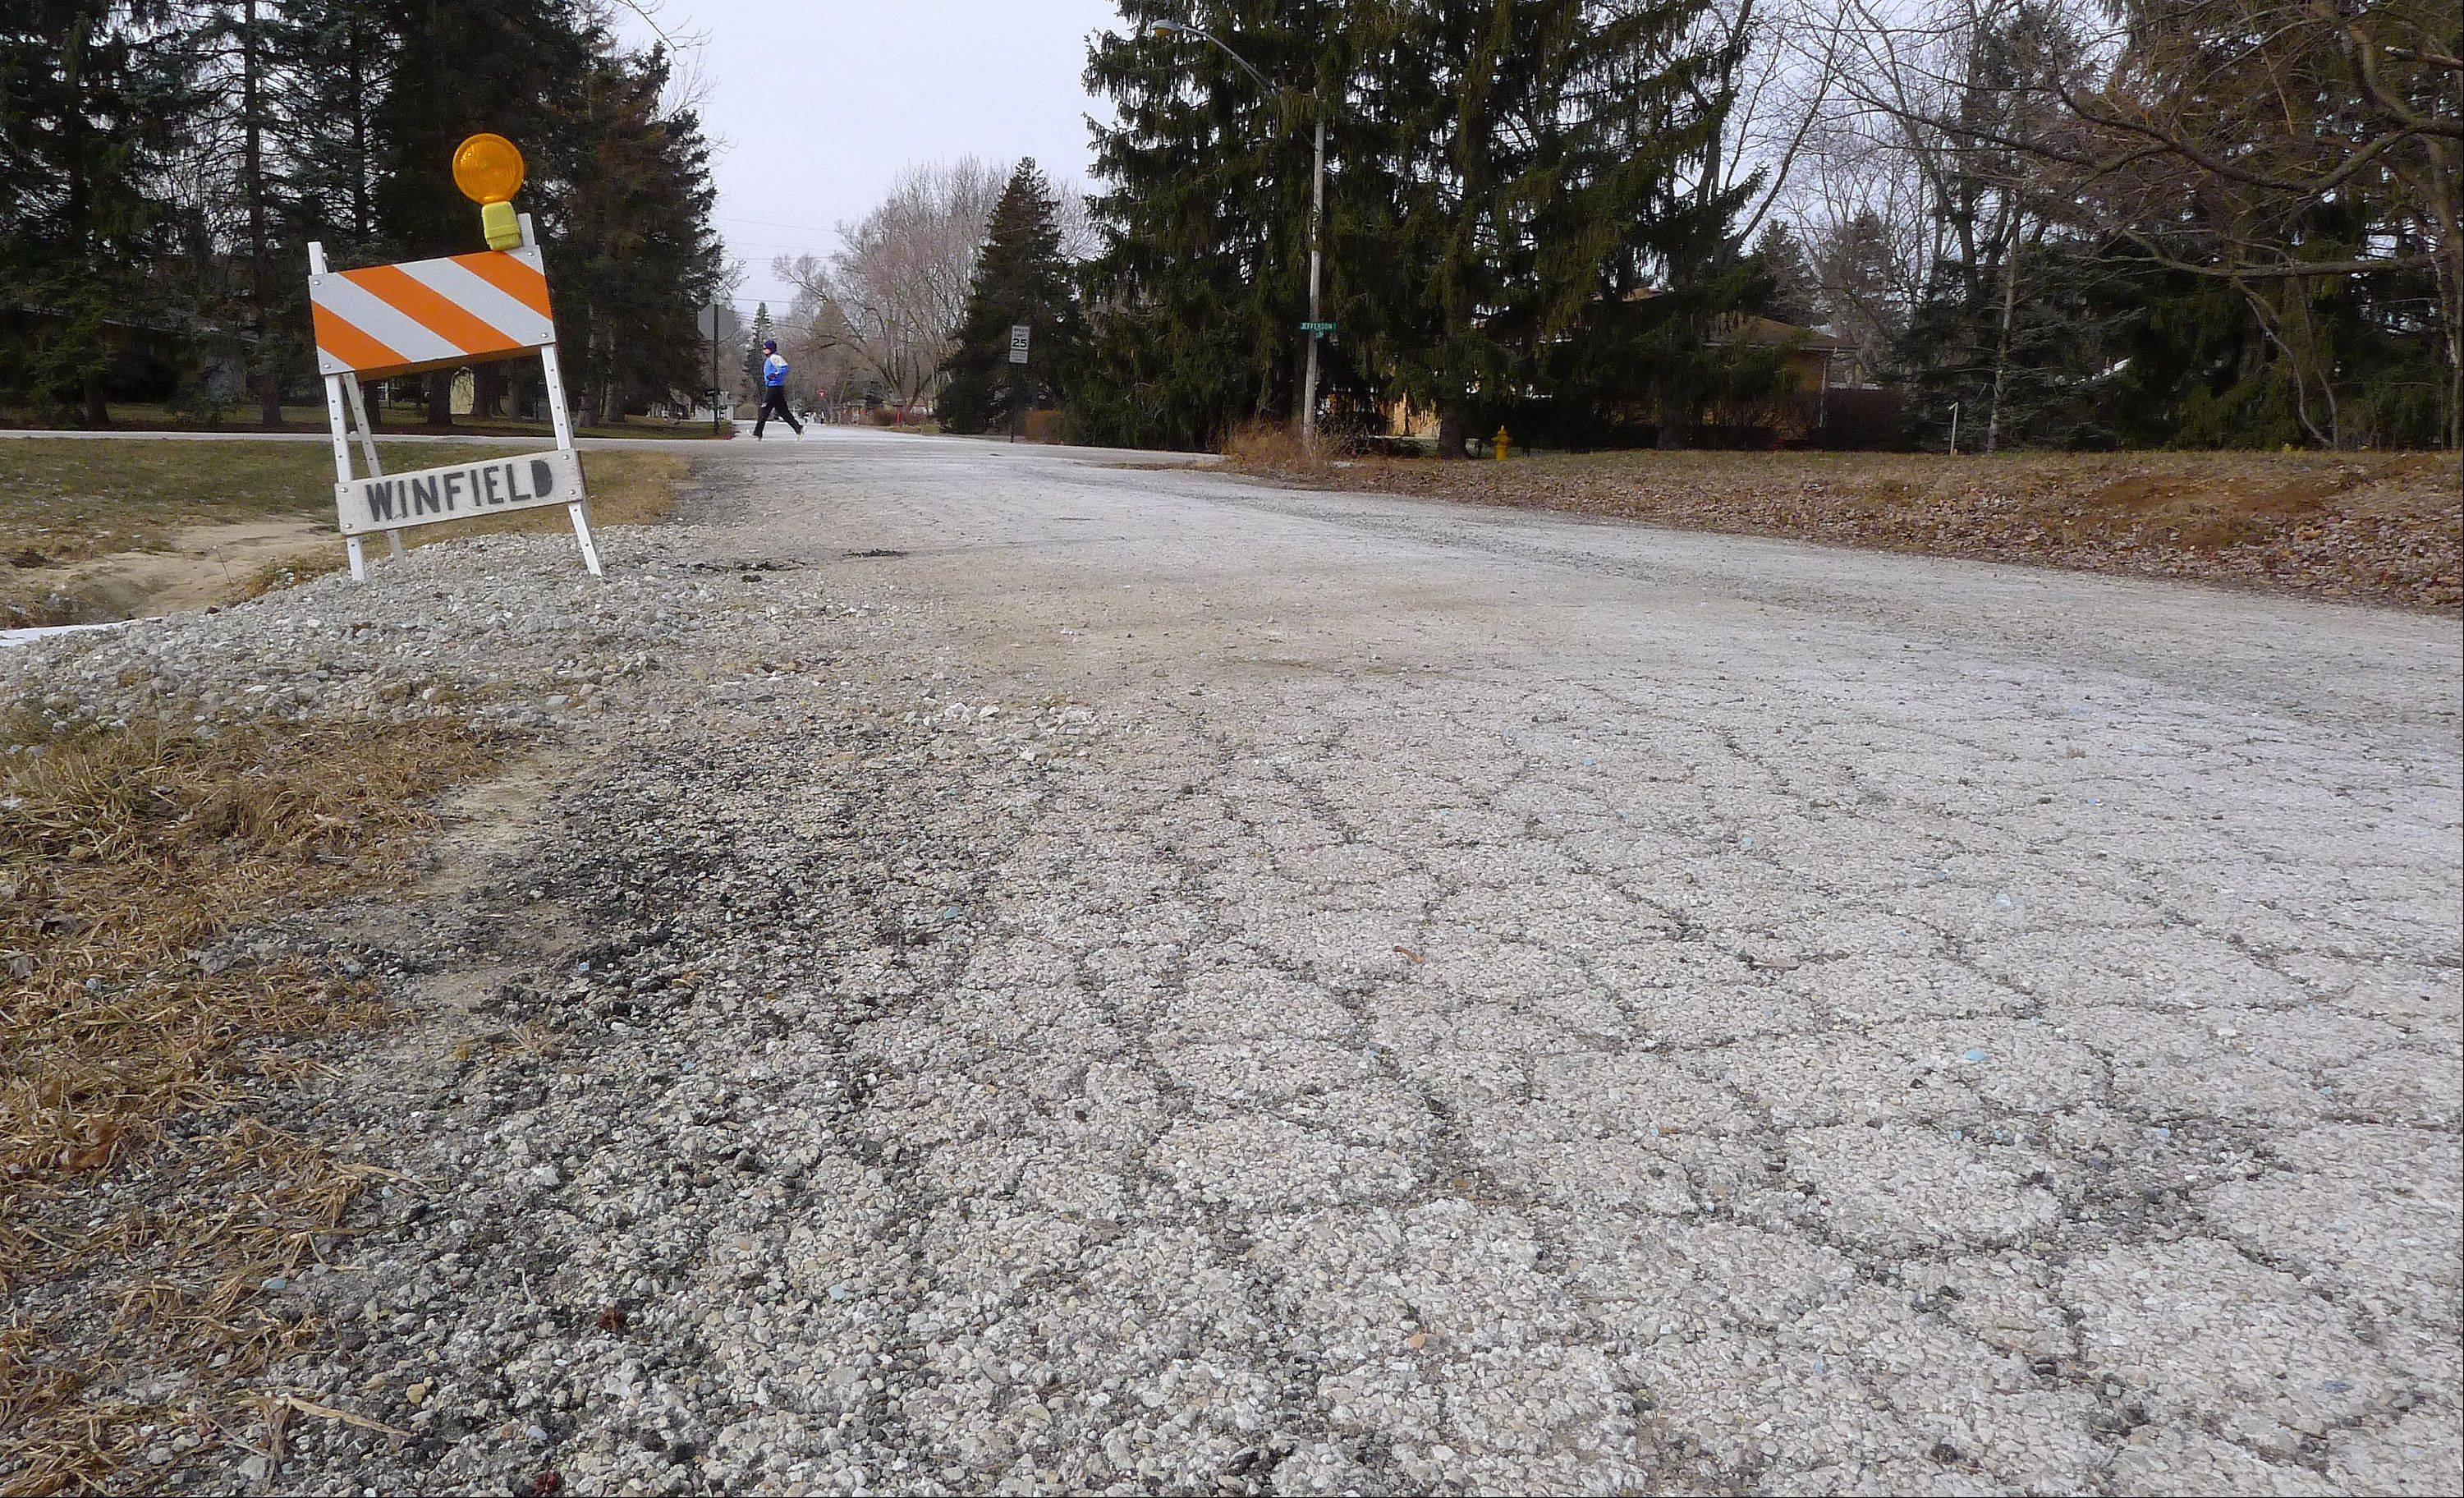 The Winfield village board is expected to vote Thursday on a plan to borrow $4 million to repair some of the town's worst streets.